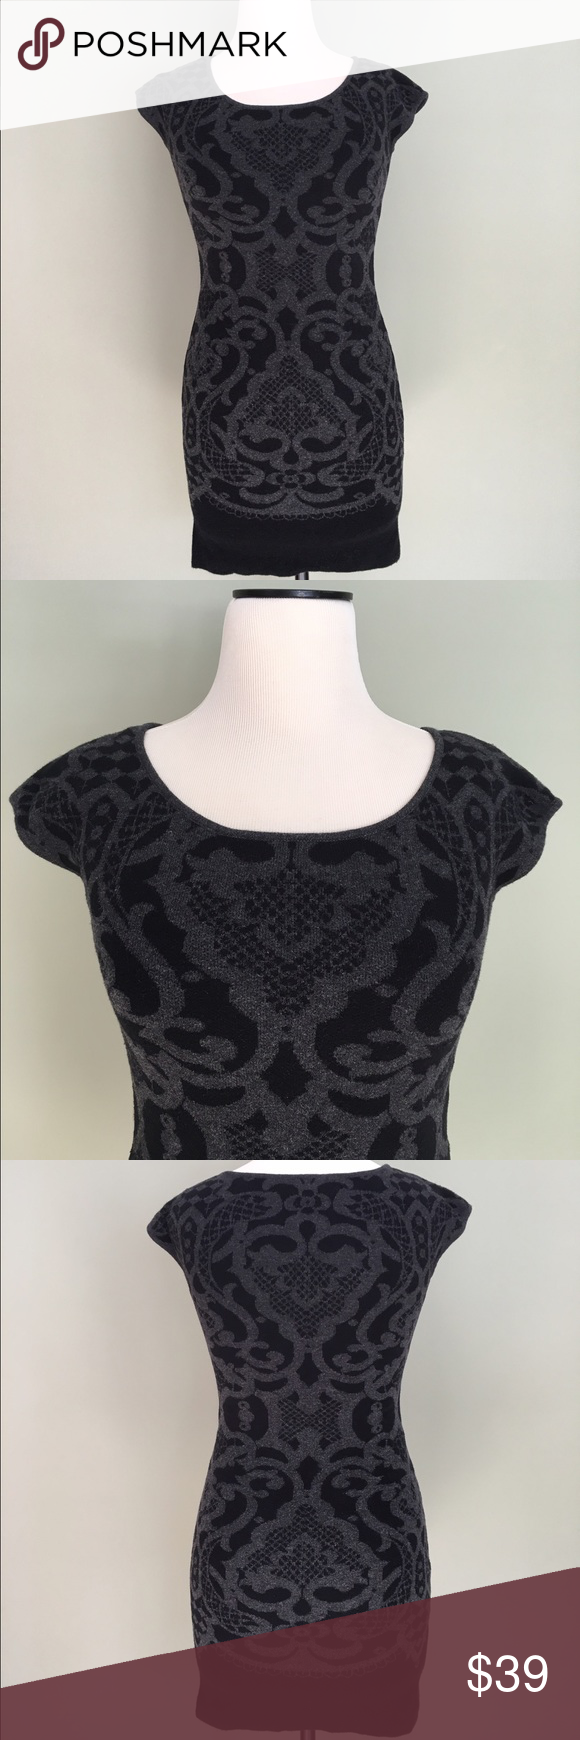 Max Studio Stretch Knit Damask Sweater Dress XS Gorgeous Max Studio black and gray stretch knit damask sweater dress. 60% cotton 40% rayon. Size XS. Excellent condition! Max Studio Dresses